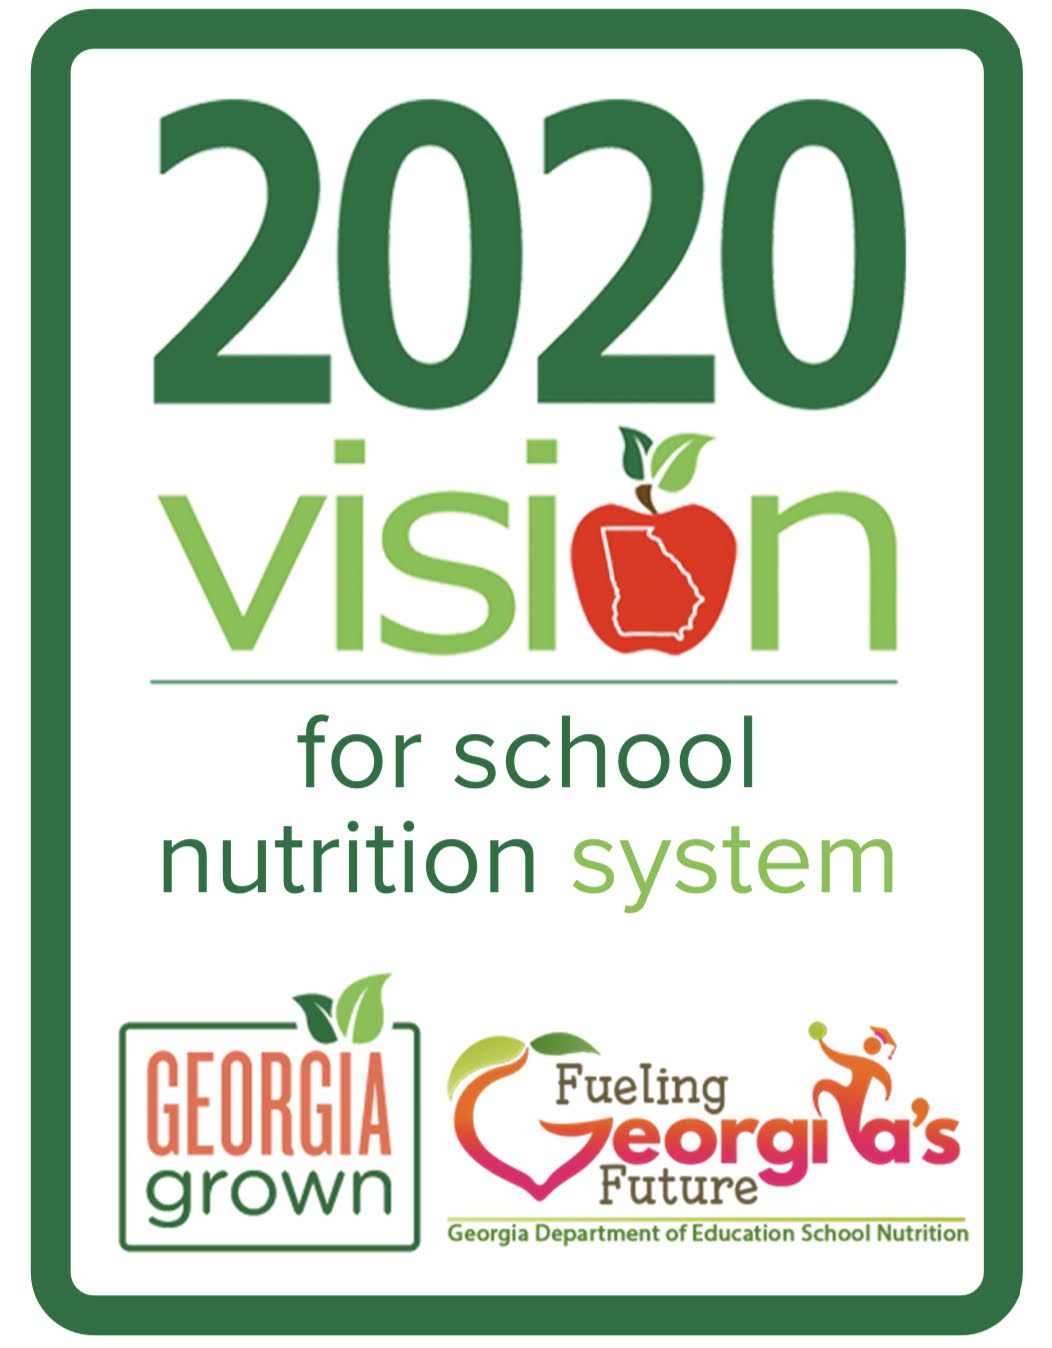 We support Local and Georgia Grown at Miller County Schools